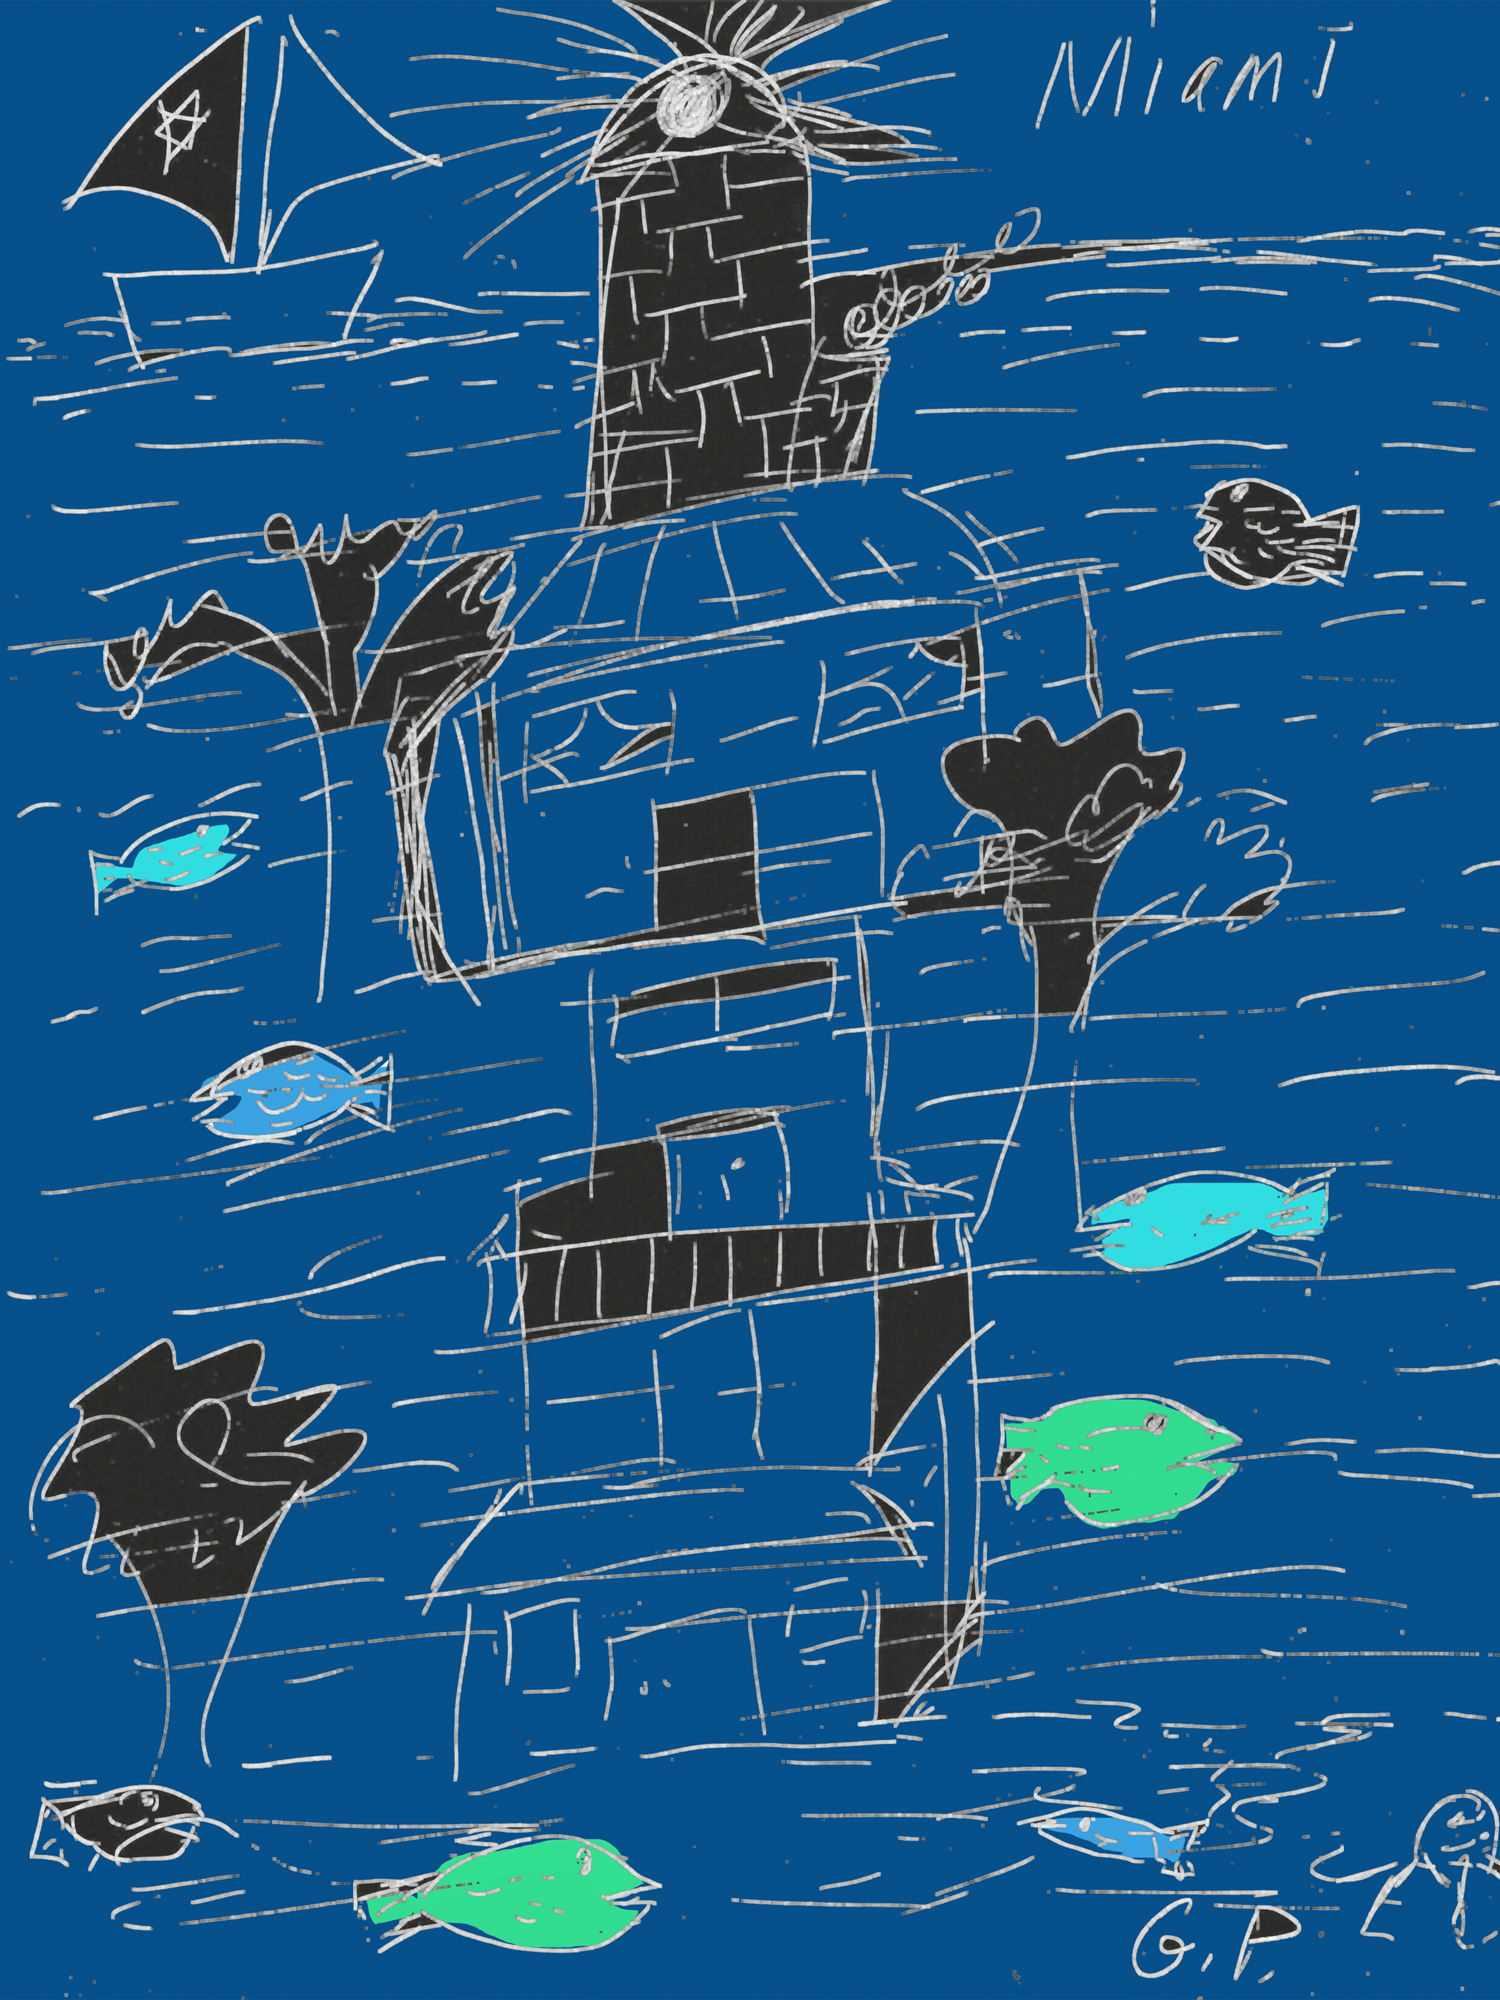 Miami_big fishes, stacked cubes.jpg